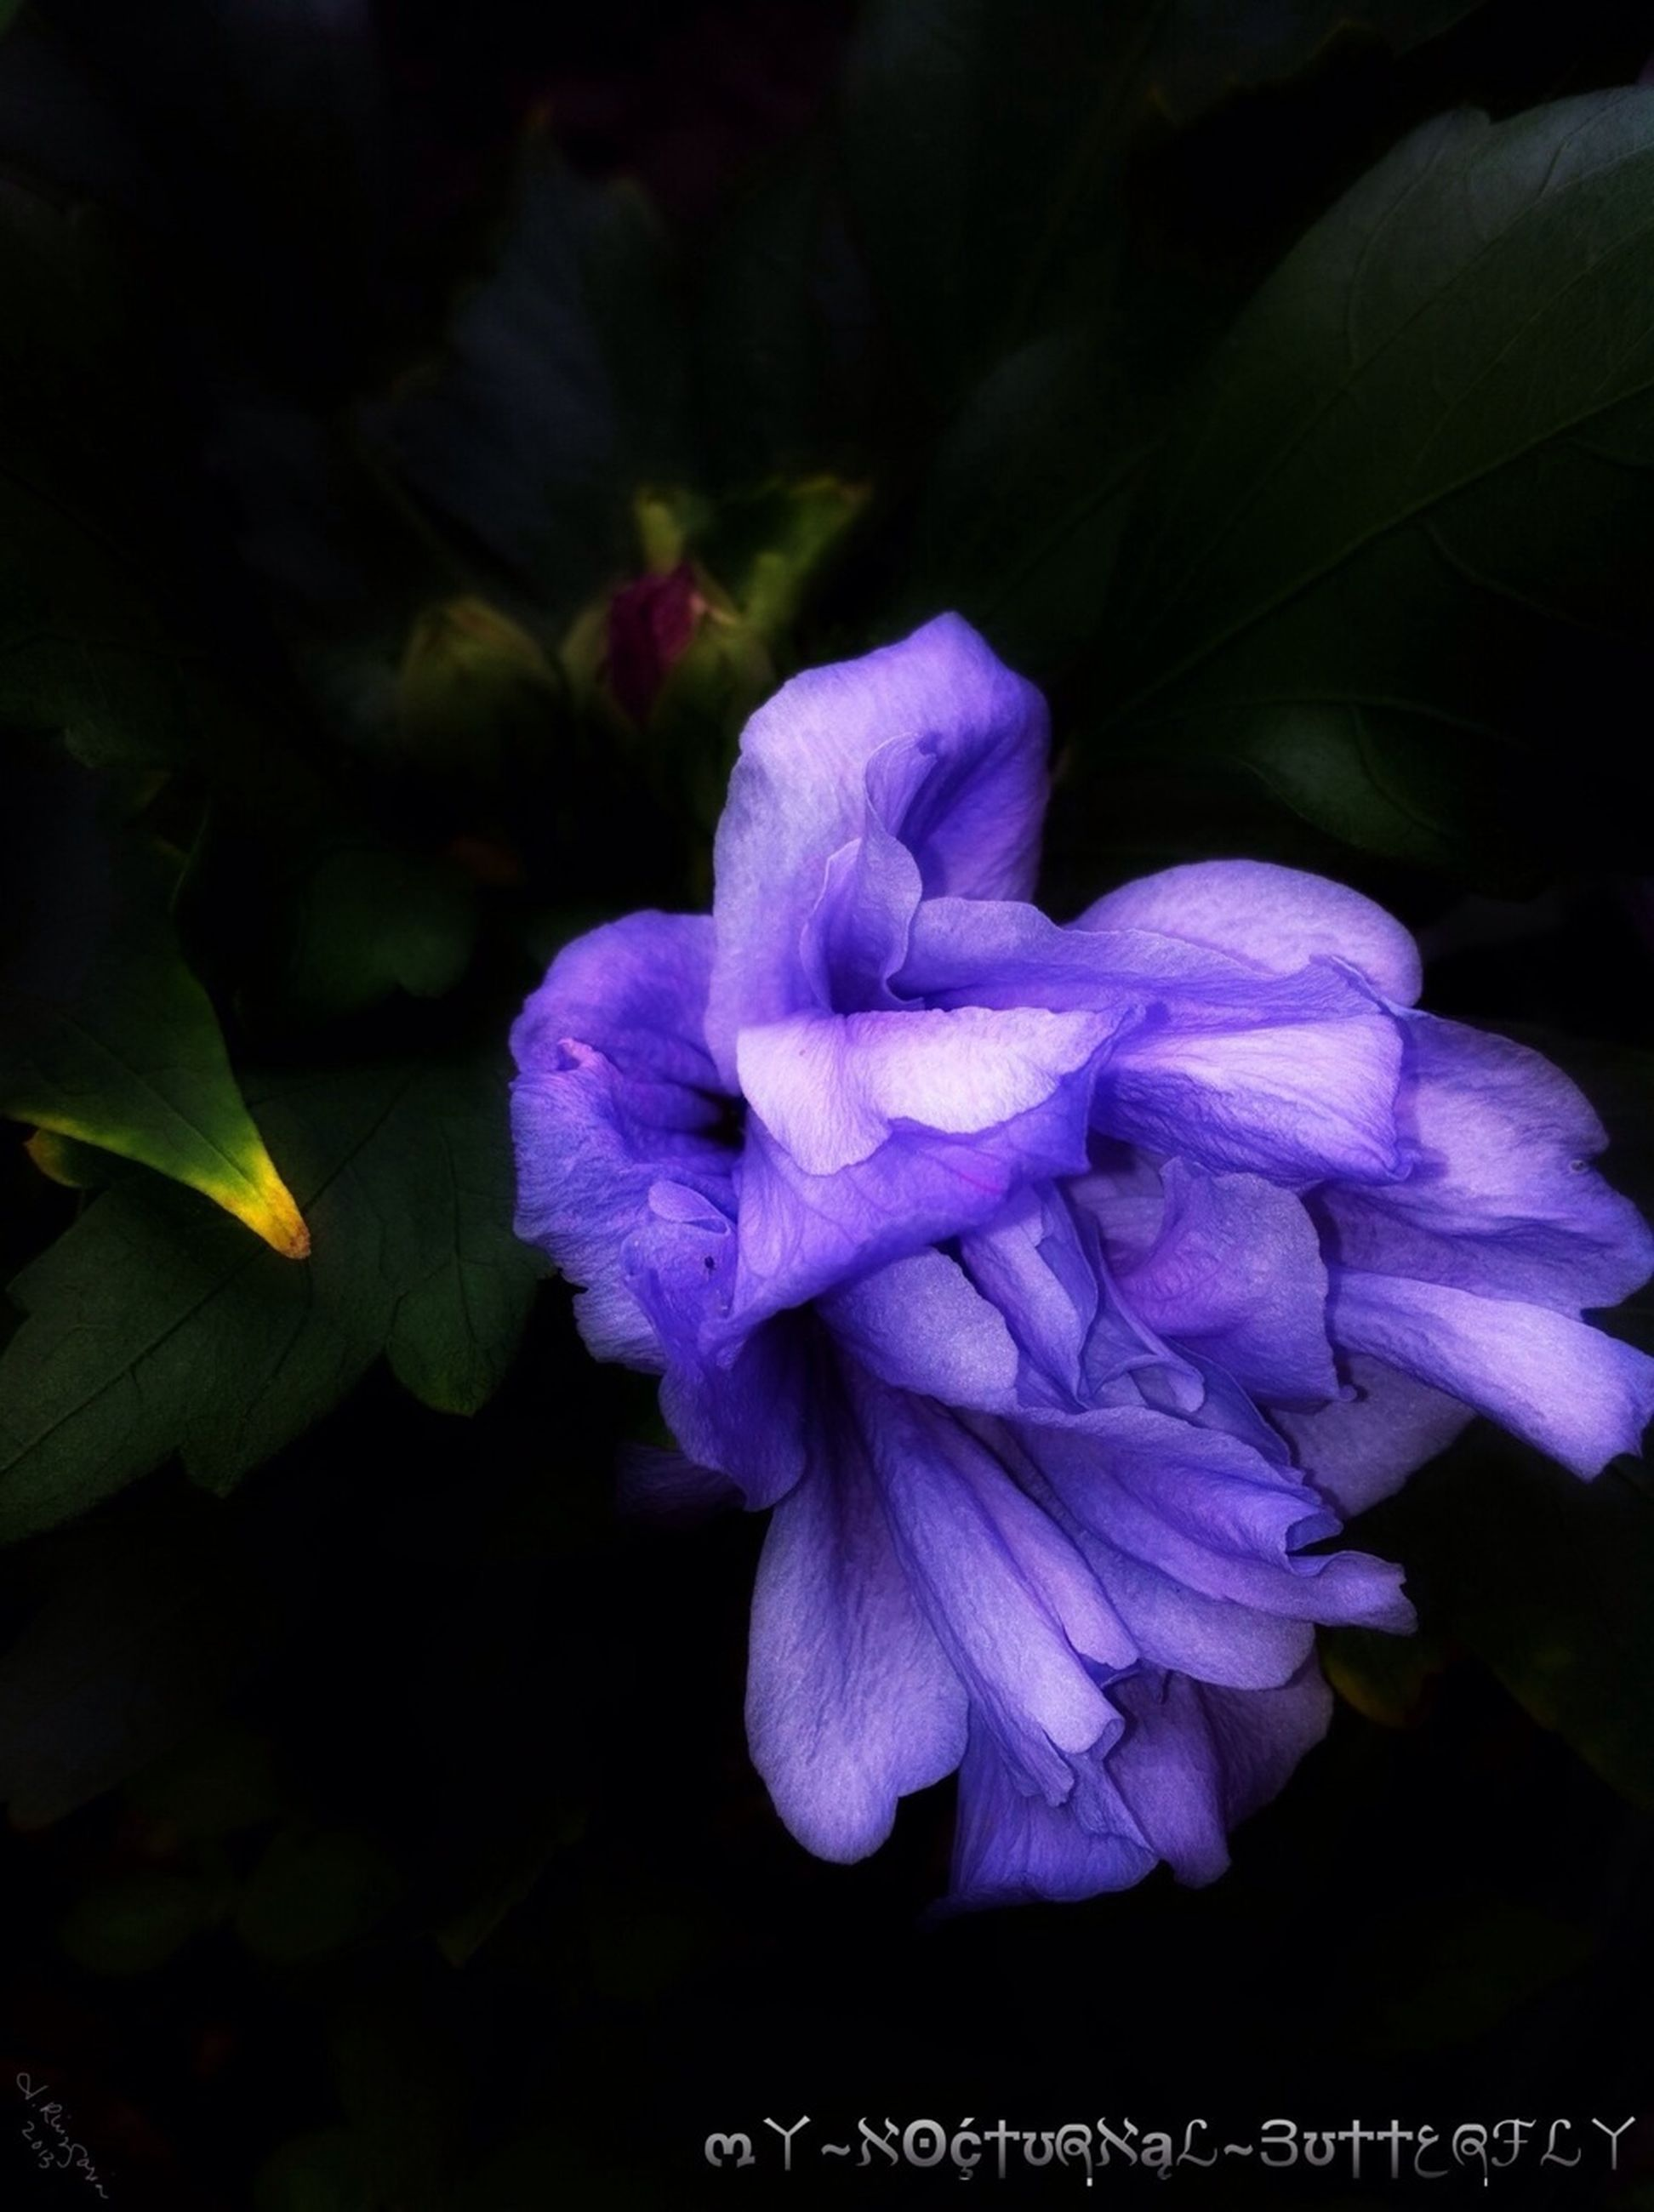 flower, petal, purple, freshness, growth, beauty in nature, fragility, flower head, close-up, nature, plant, leaf, blooming, focus on foreground, night, in bloom, black background, no people, blue, park - man made space